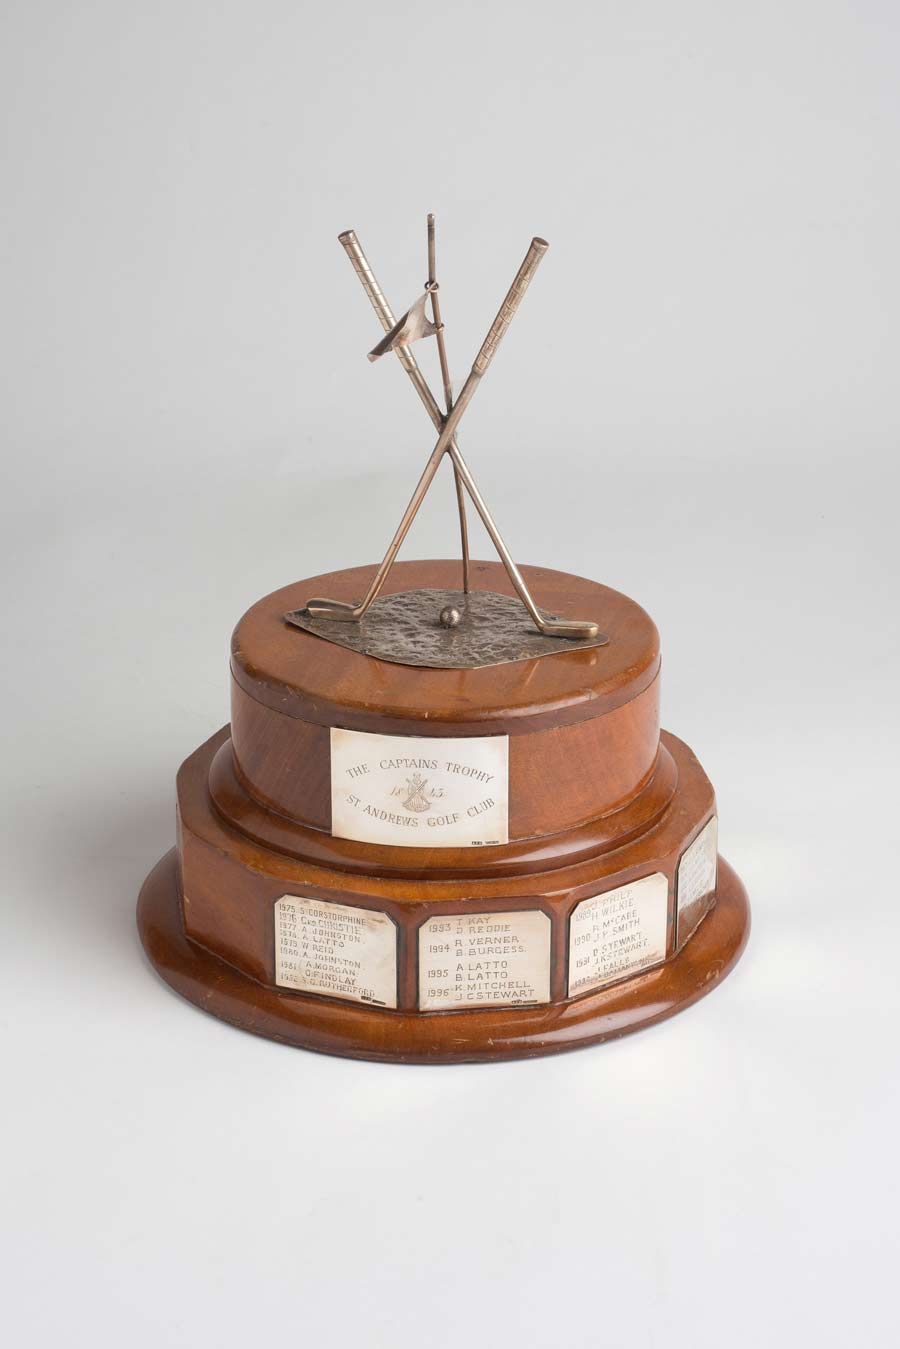 Captains Trophy